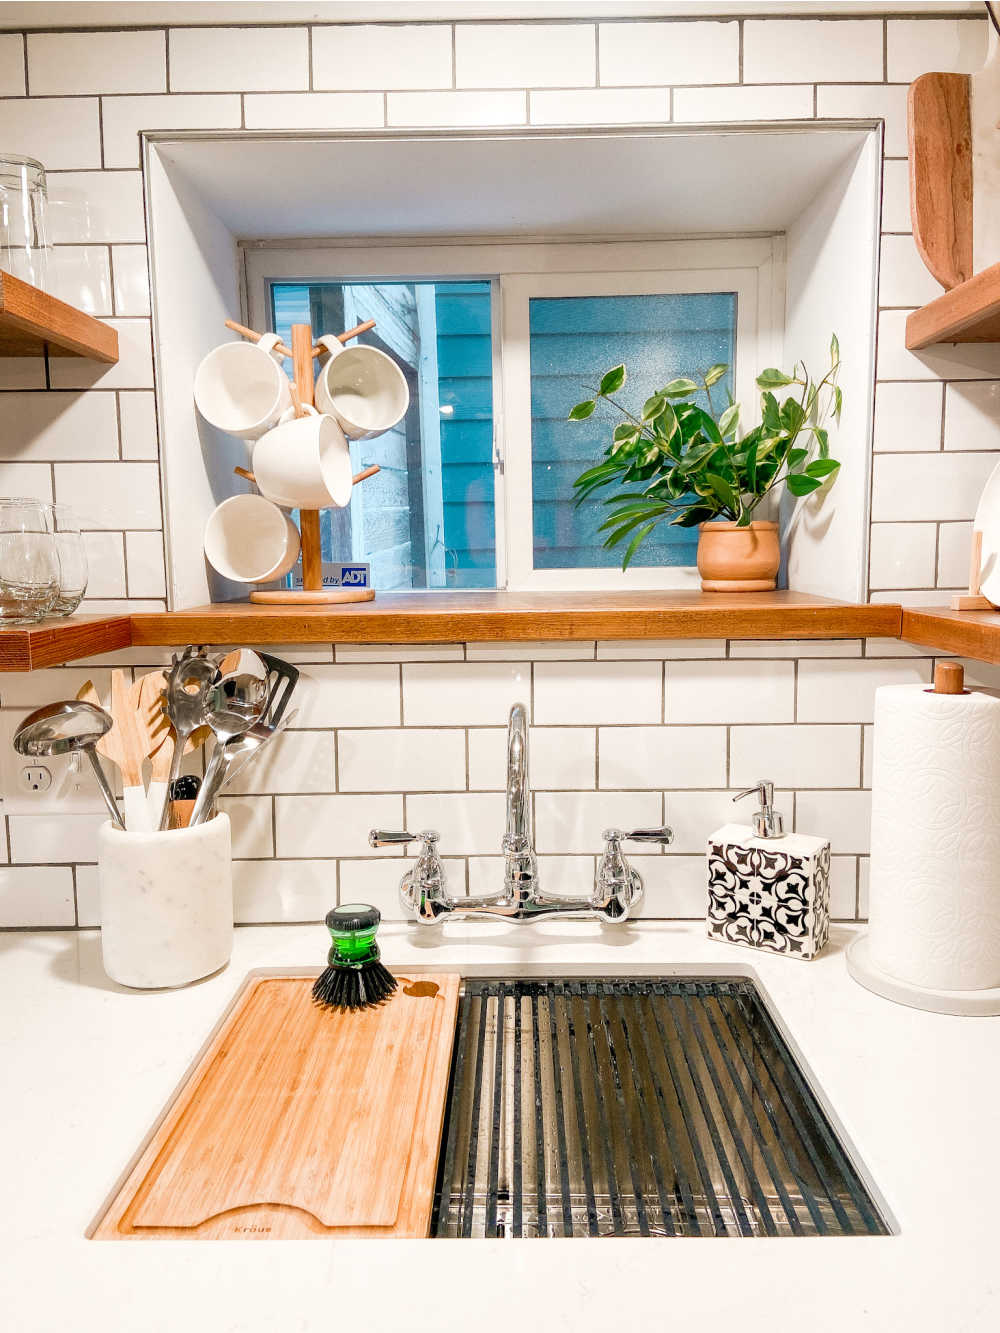 Airbnb kitchen remodel with floating shelves, subway tile and wall-mounted faucet.